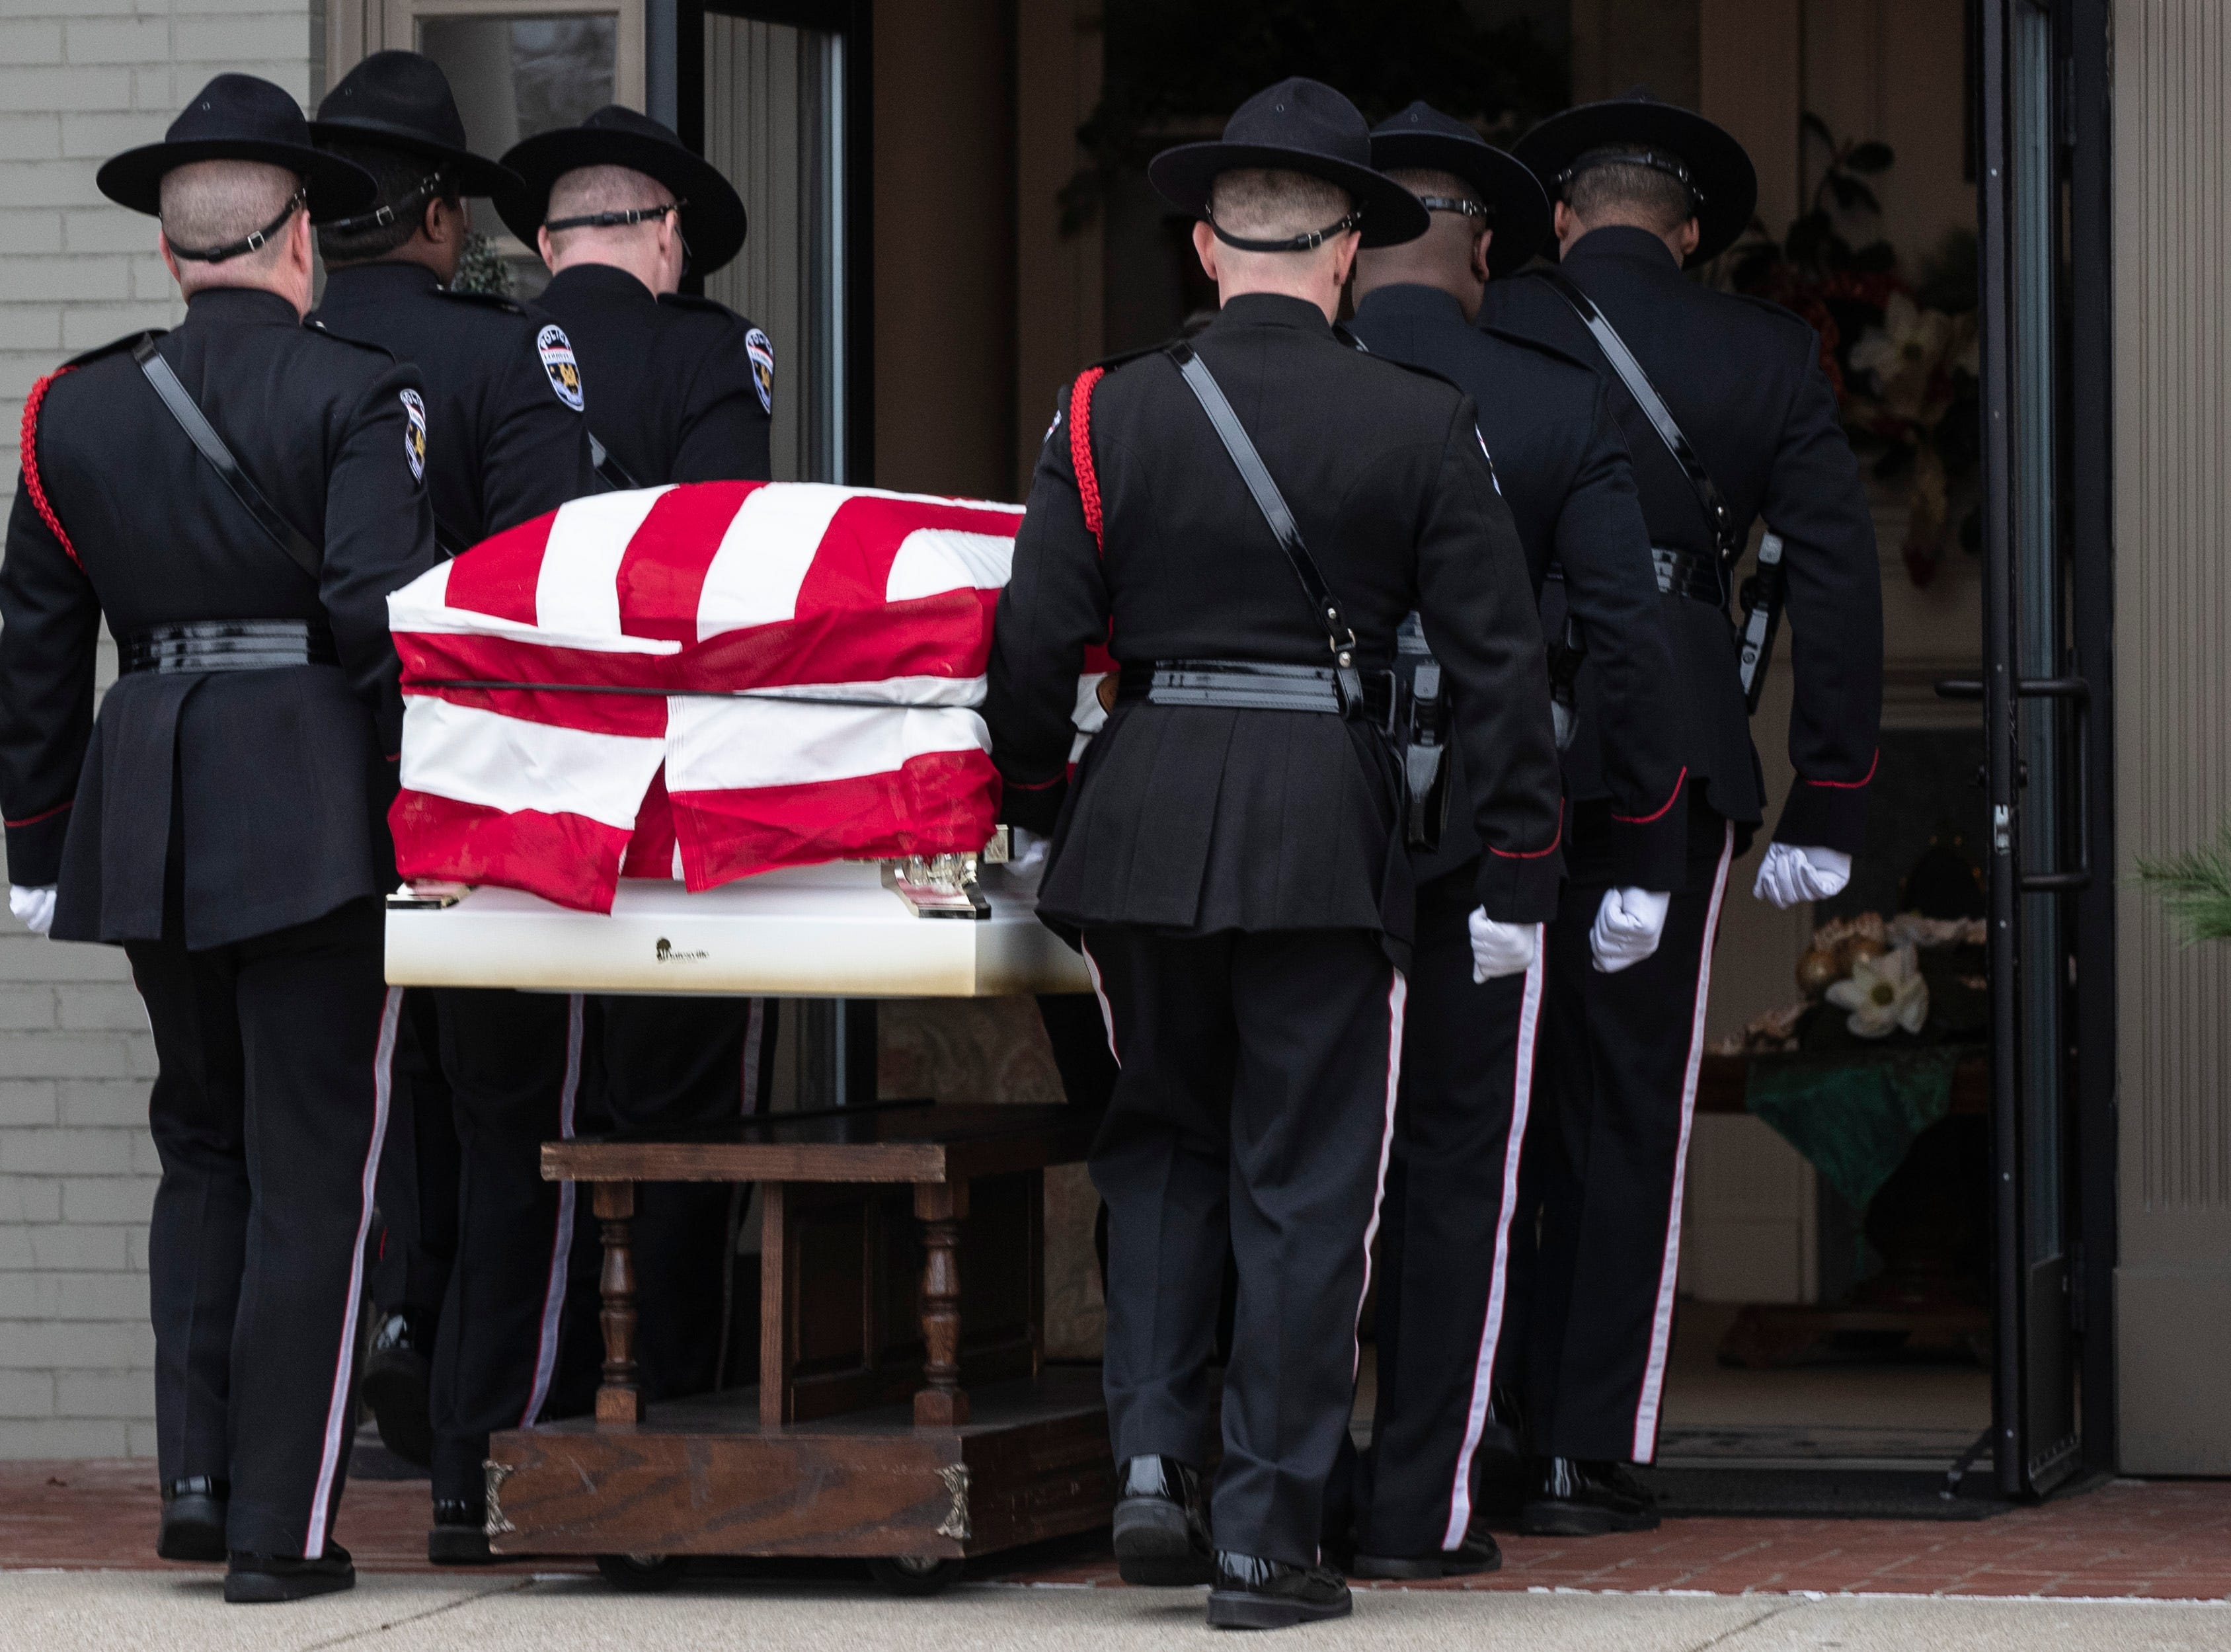 Police officers carry Deidre Mengedoht's coffin into the Resthaven Funeral Home on Bardstown Road in Louisville, Ky. December 29, 2018